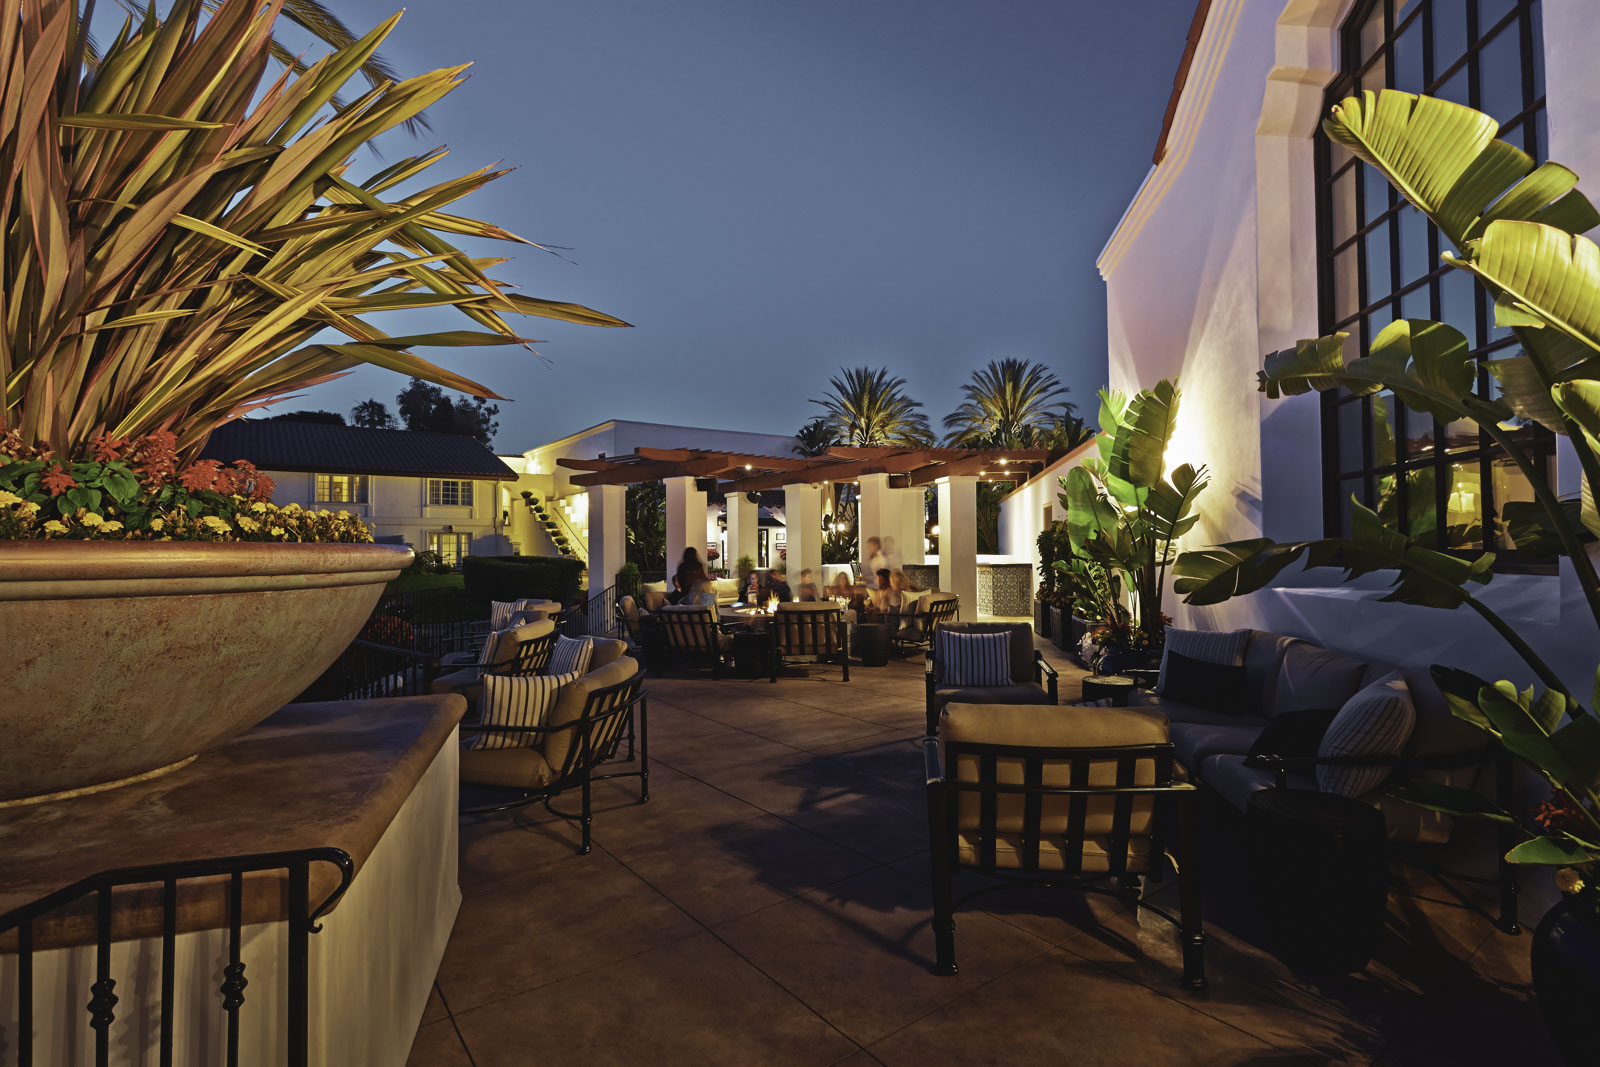 Bob's Steak & Chop House - Carlsbad, CA (Outdoor Seating Area)